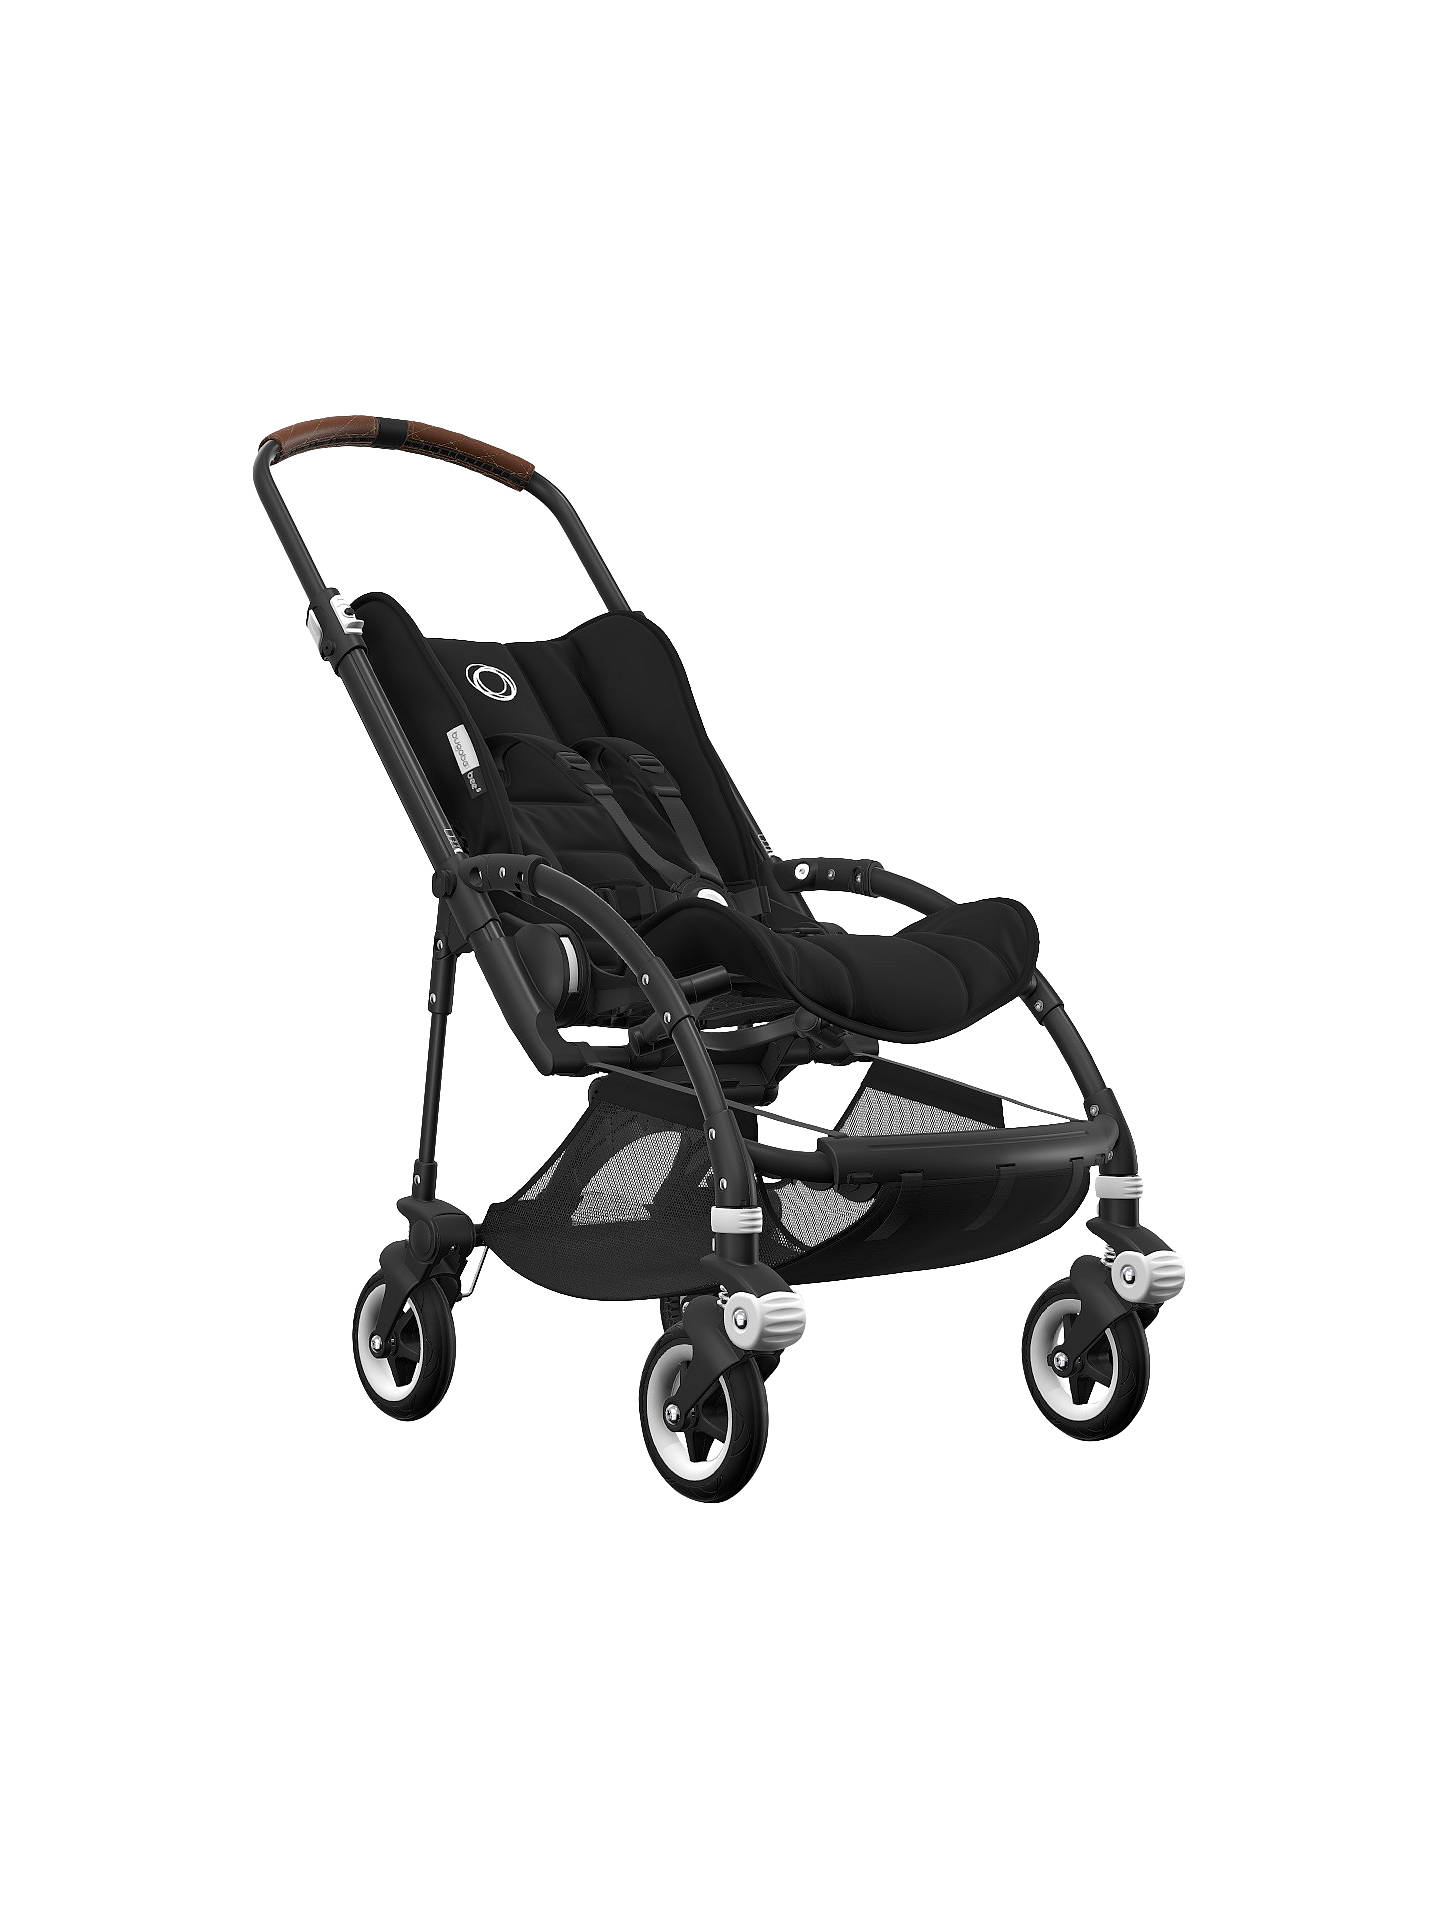 BuyBugaboo Bee5 Complete Pushchair, Black Base with Cognac Handles and Black Fabric Online at johnlewis.com